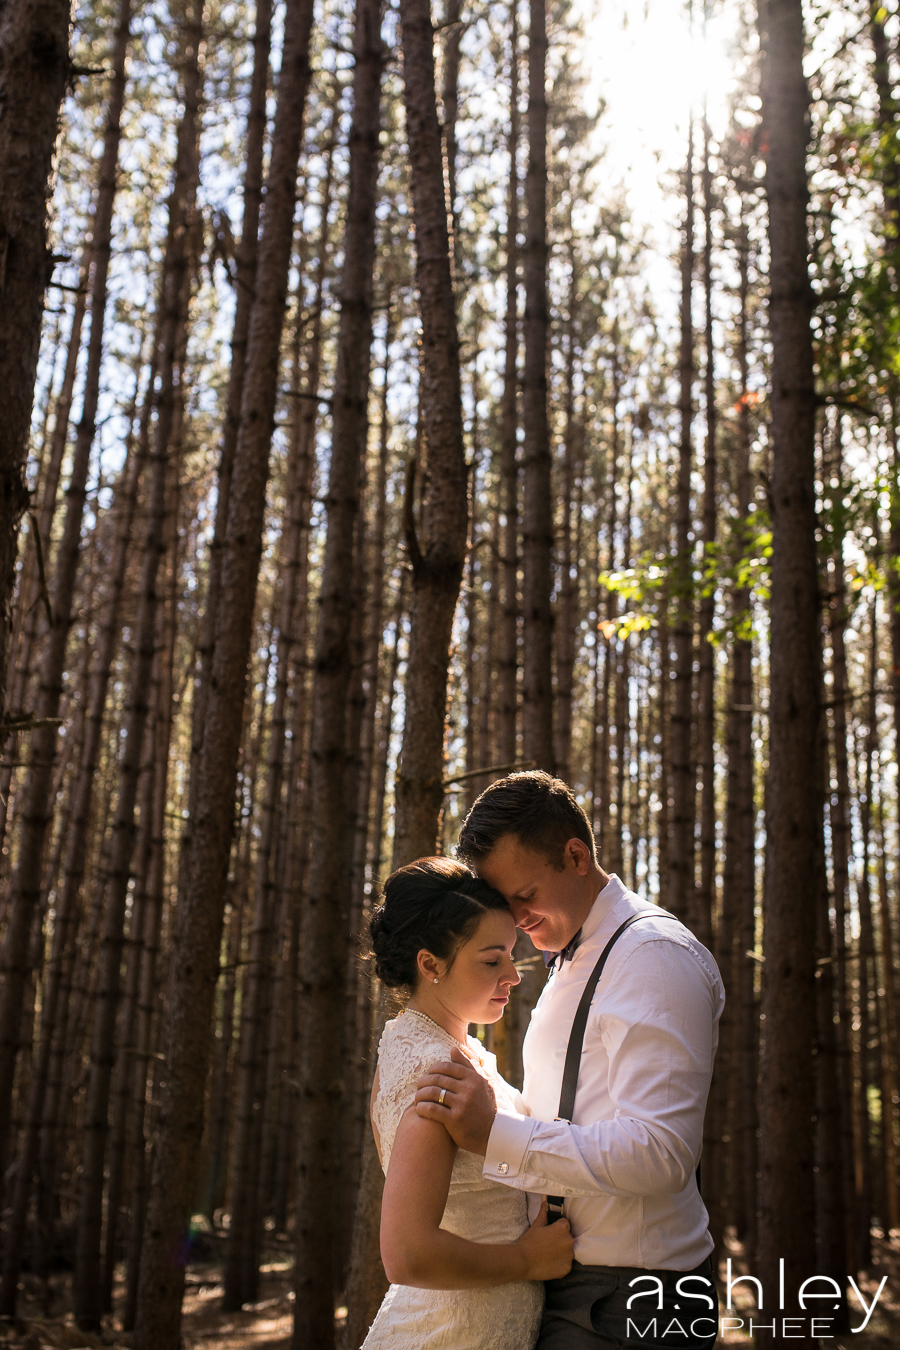 Ashley MacPhee Photography Mont Tremblant Wedding Photographer (41 of 92).jpg